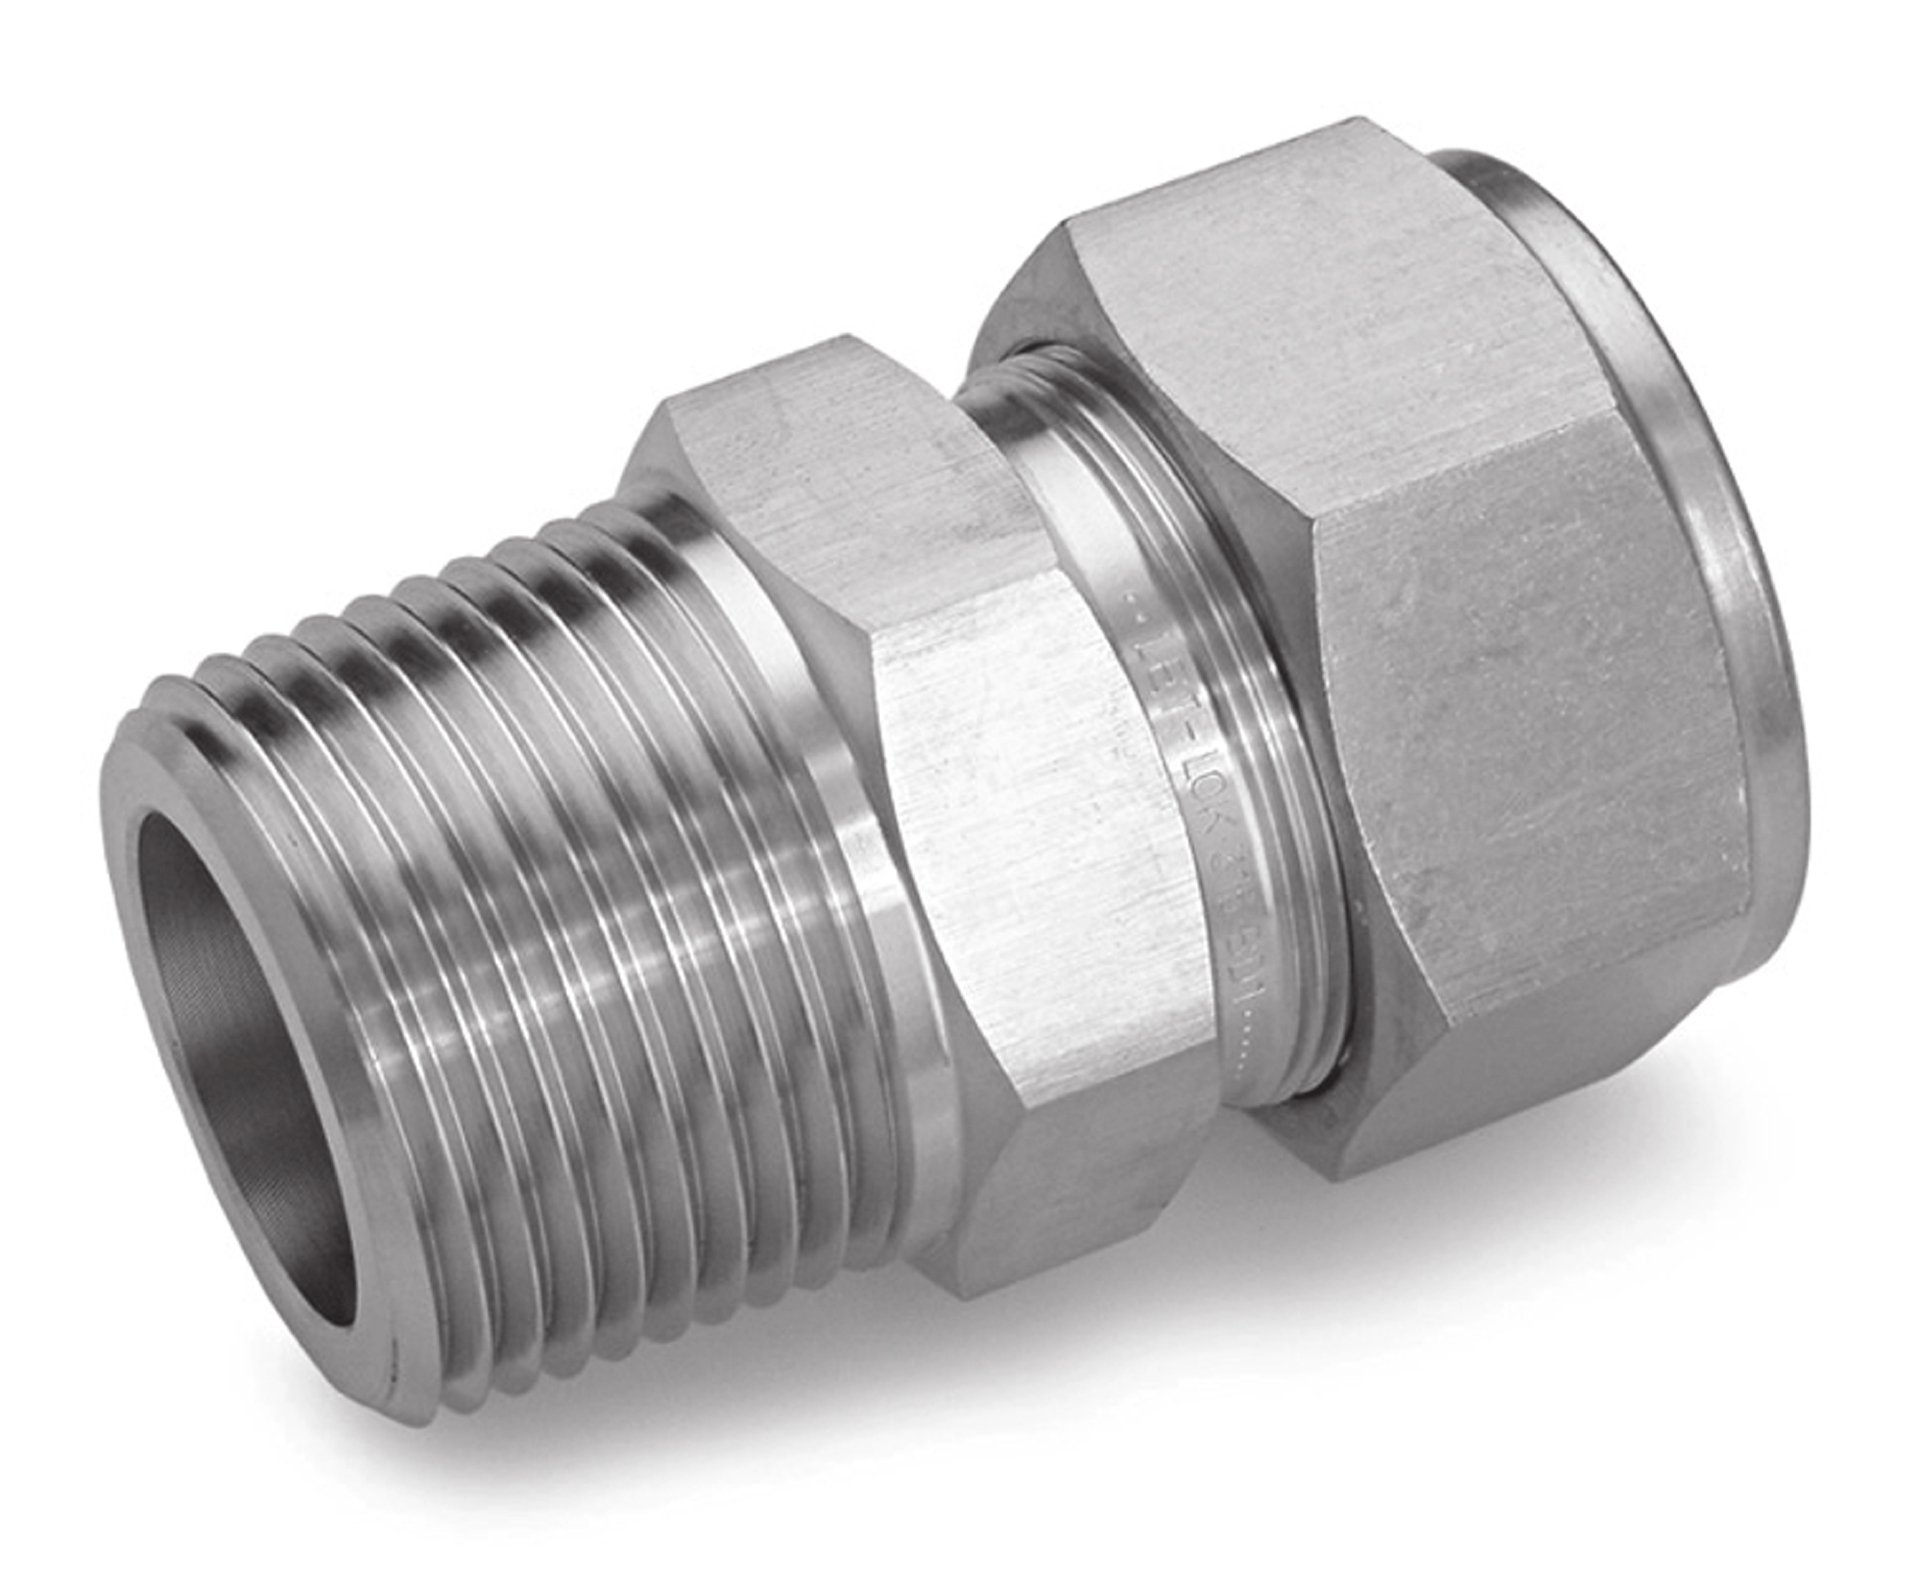 Ham-Let 3002012 Stainless Steel 316 Let-Lok Compression Fitting, Adapter, 1/2'' NPT Male x Tube OD